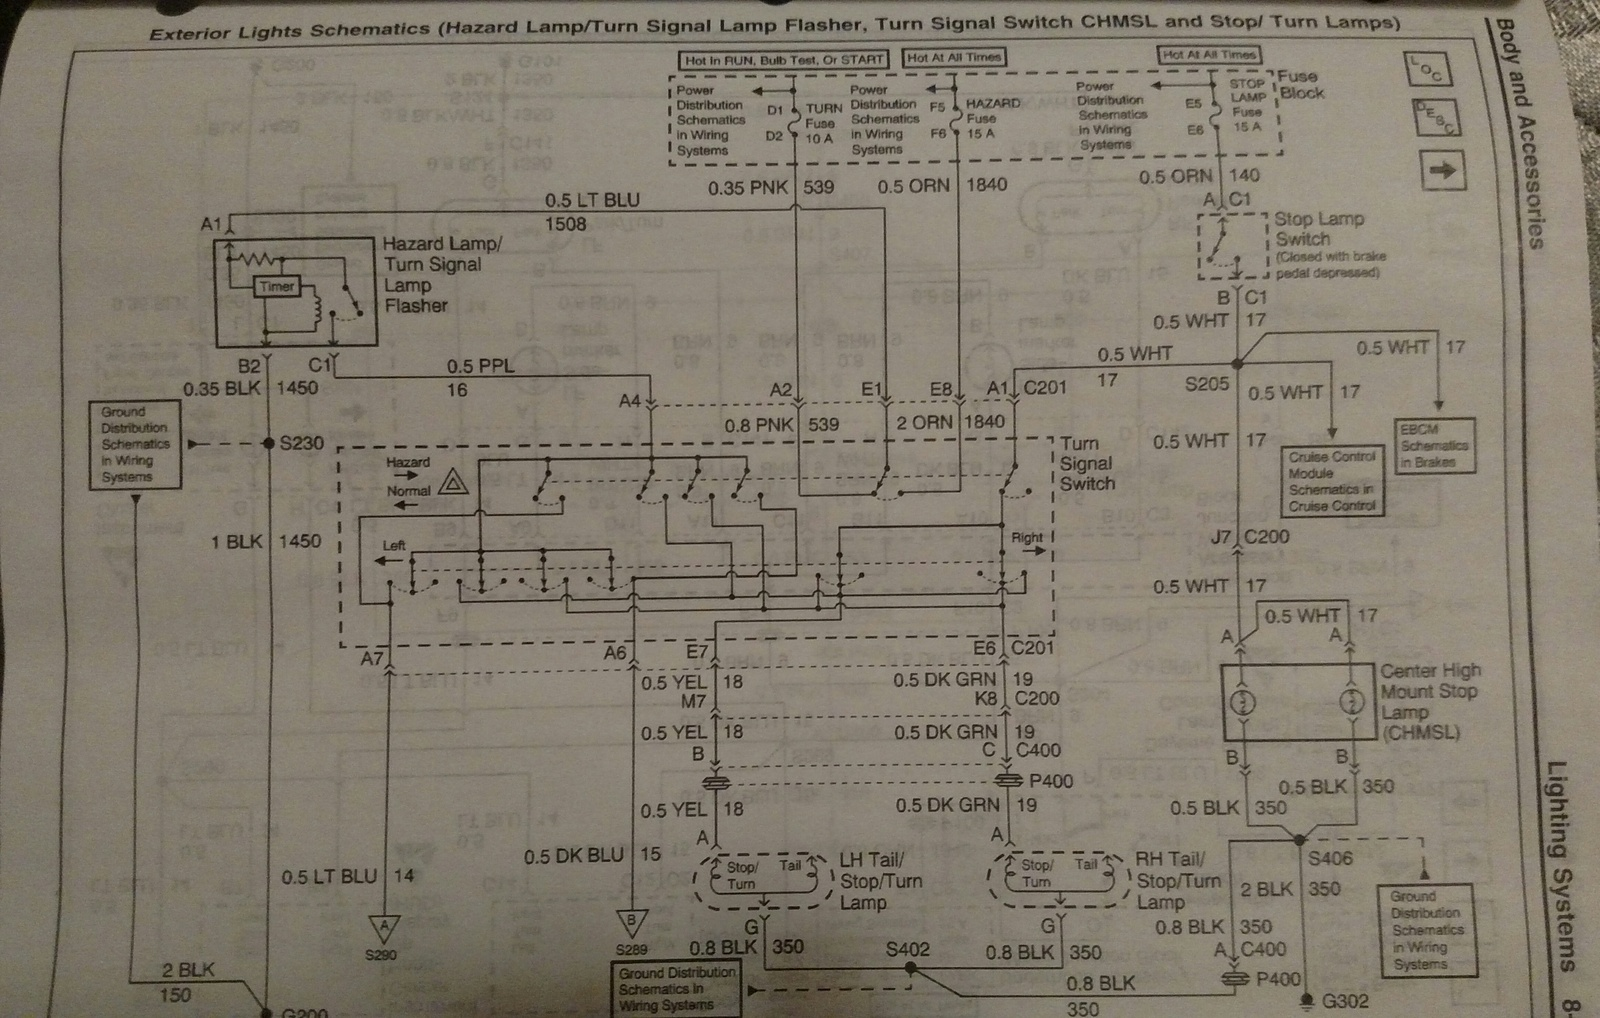 hight resolution of here s the wiring diagram you re looking at the yellow wire on the left socket and the dark green wire on the right socket hth jim